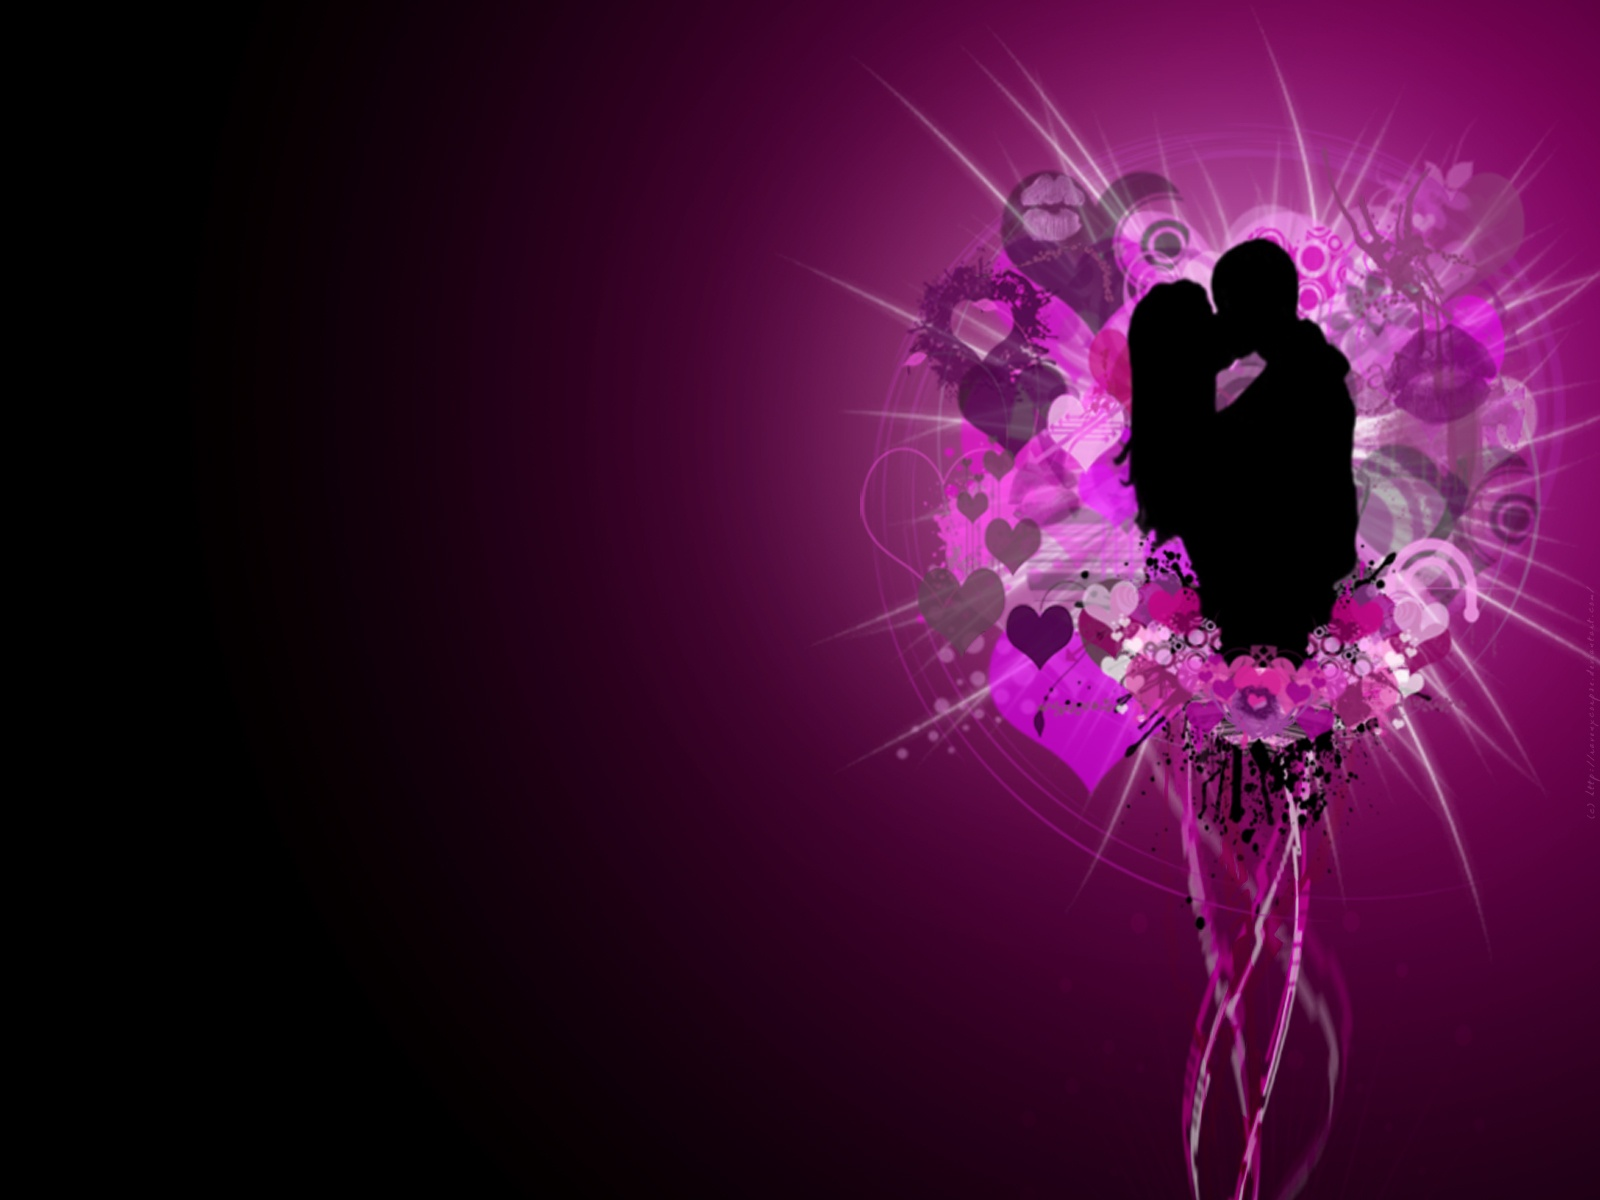 Romantic Wallpapers Kiss HD A27 - Free Romantic Wallpapers, Romantic Couples, Romantic Love Wallpapers, Romantic Kiss Wallpapers, high definition desktop laptop mobile background Pictures images downloads.